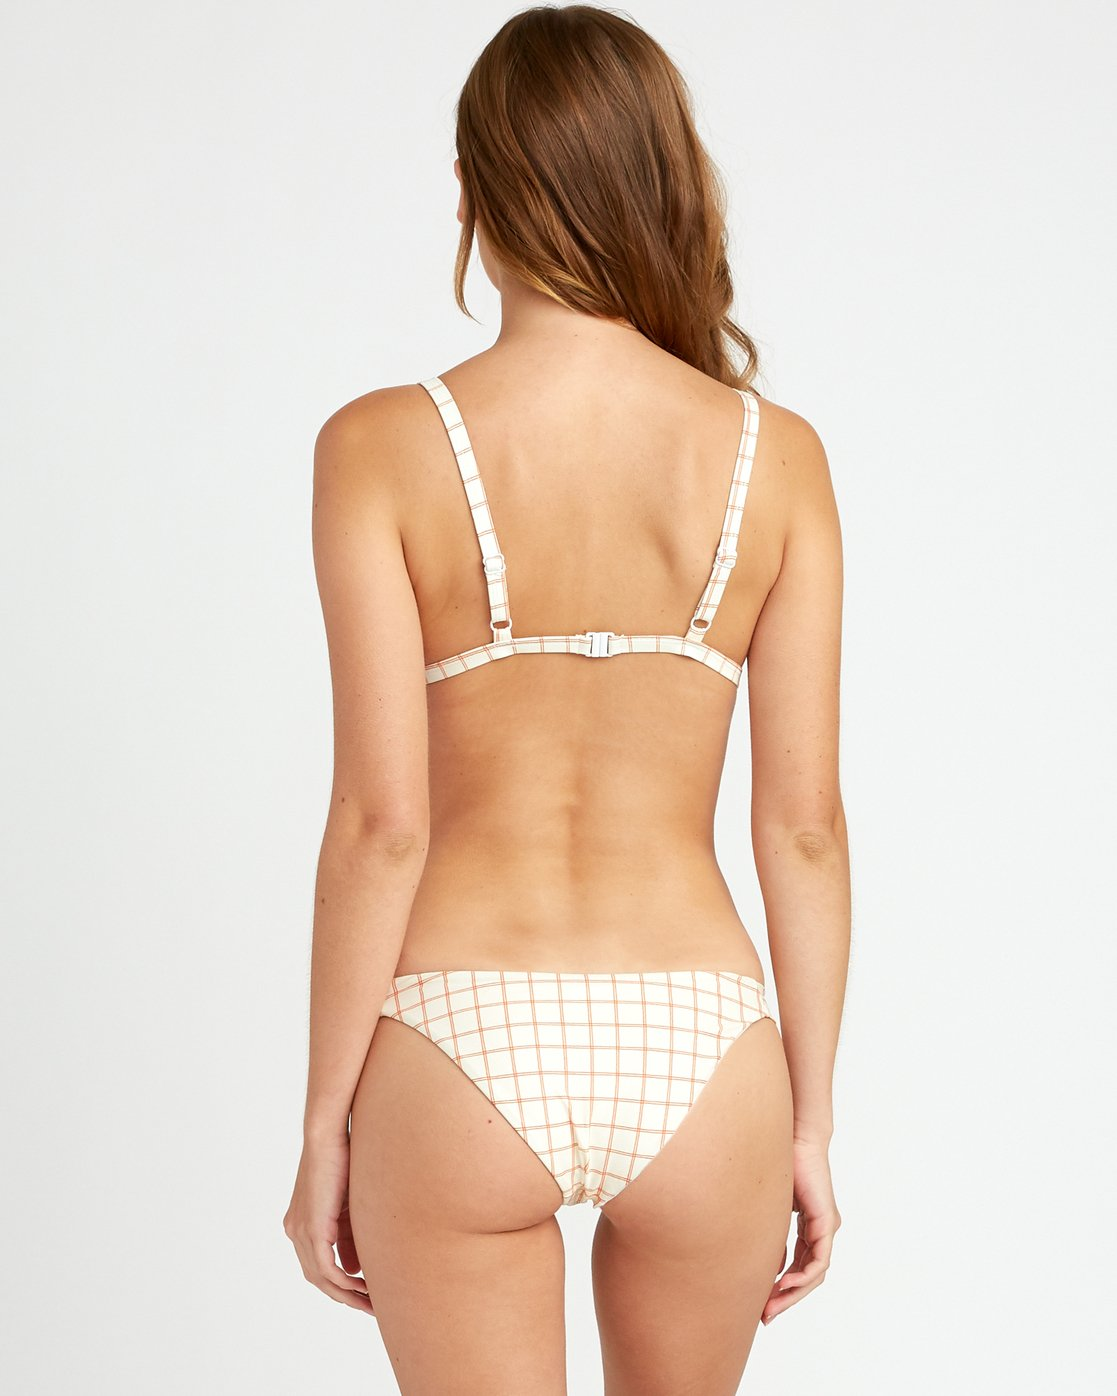 0 KLW Grid Medium Bikini Bottoms White XB03URKM RVCA